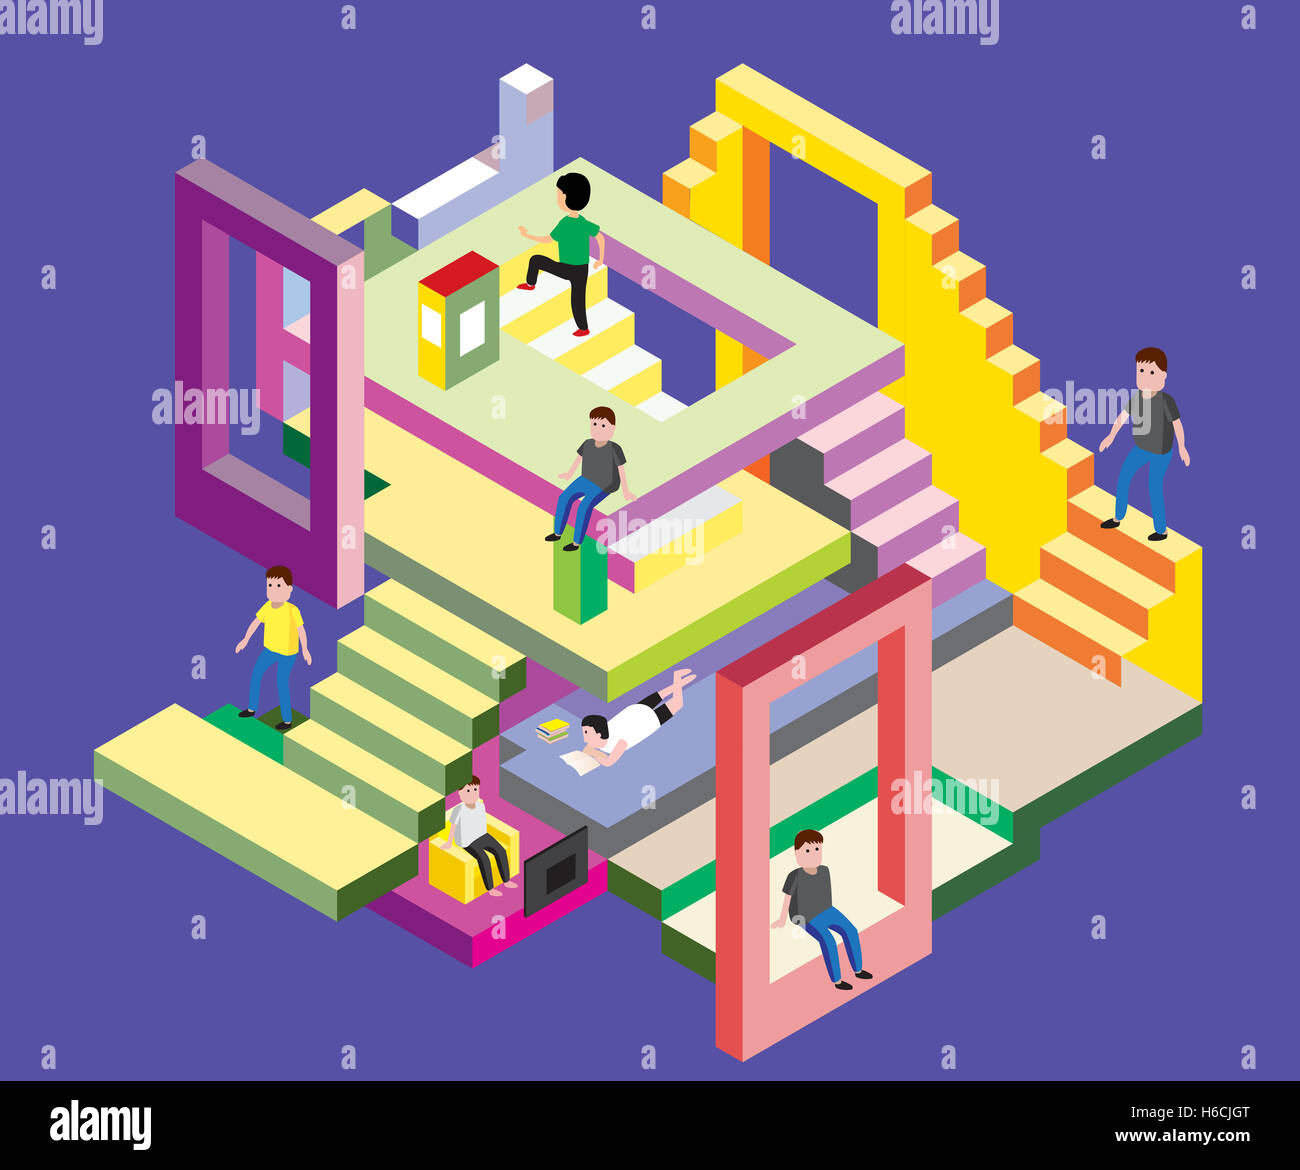 Isometric man in levels, Vector Illustration - Stock Image